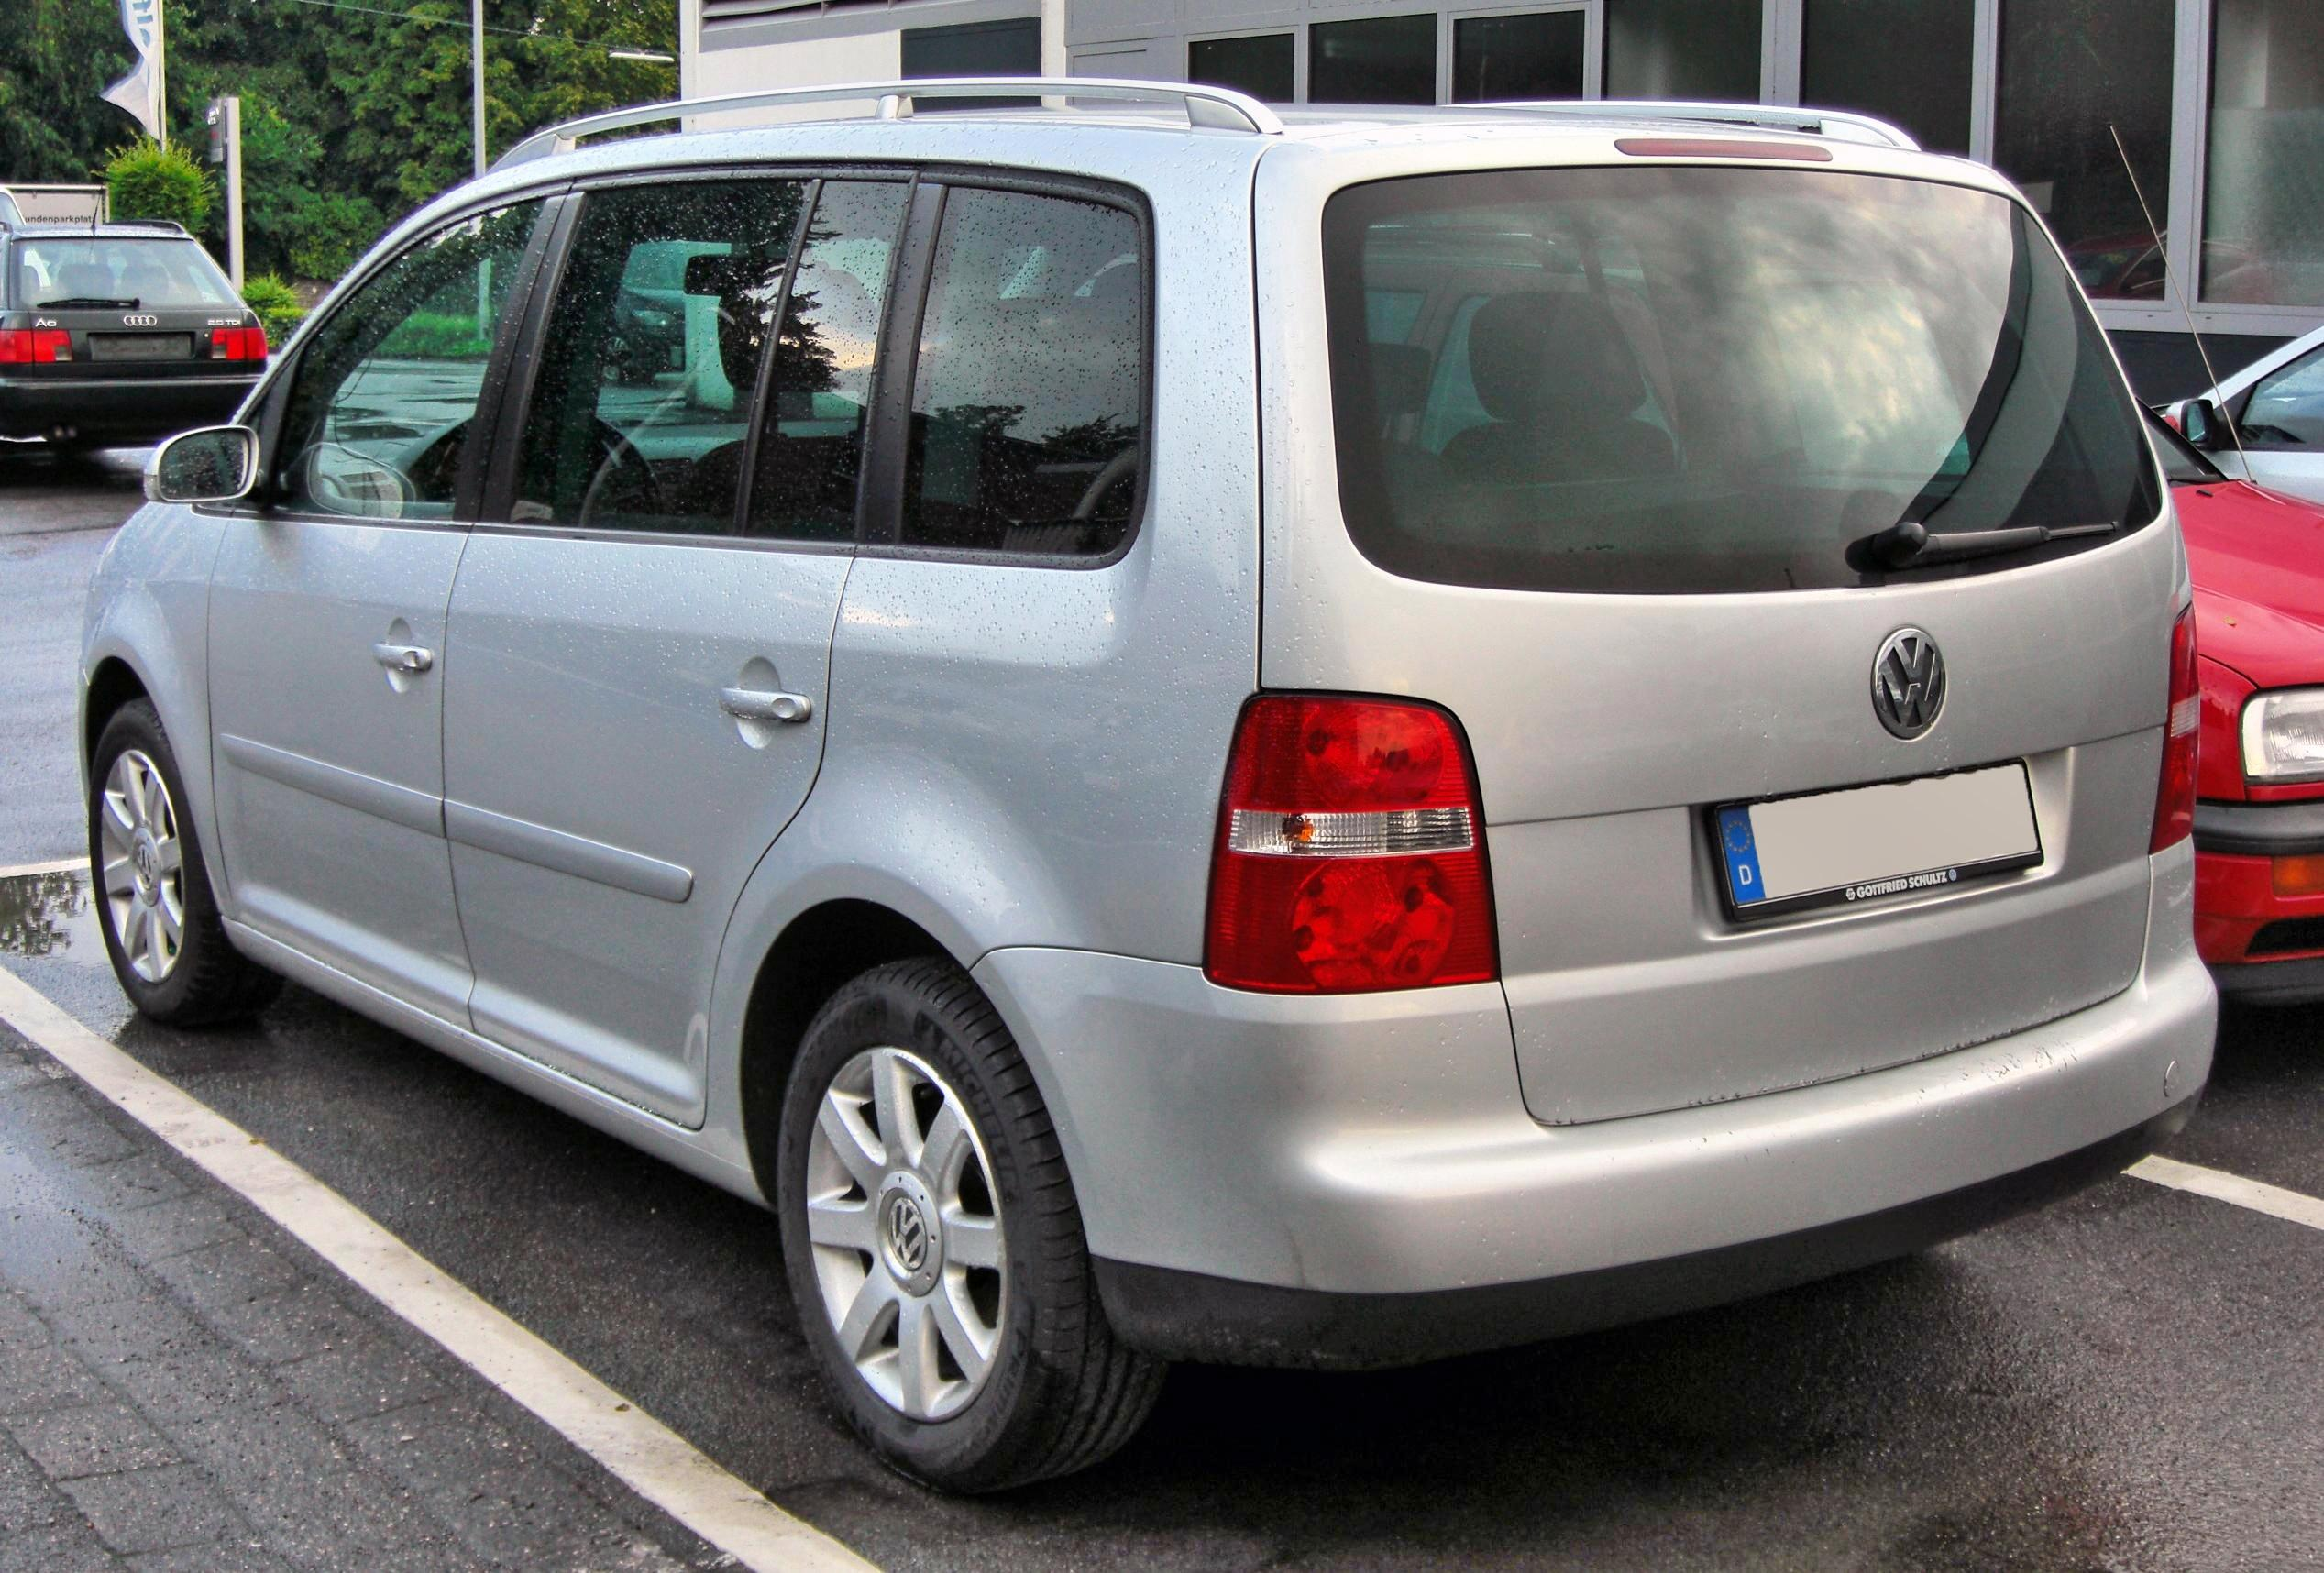 datei vw touran 20090611 rear jpg wikipedia. Black Bedroom Furniture Sets. Home Design Ideas